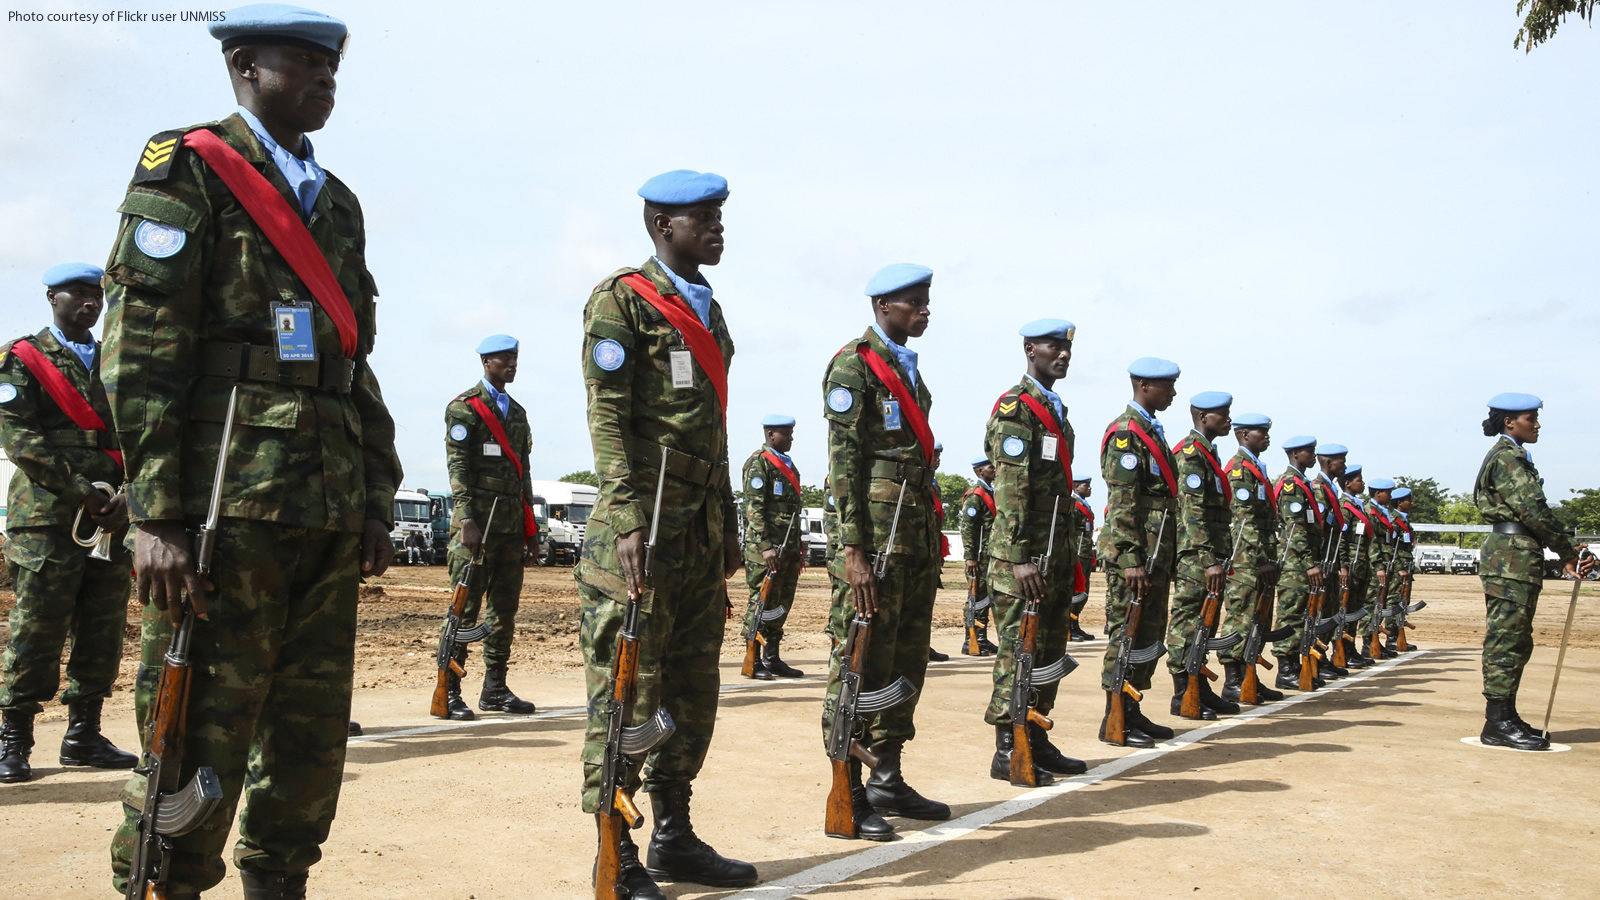 United Nations Peacekeeping Soldiers in Rows in Sudan